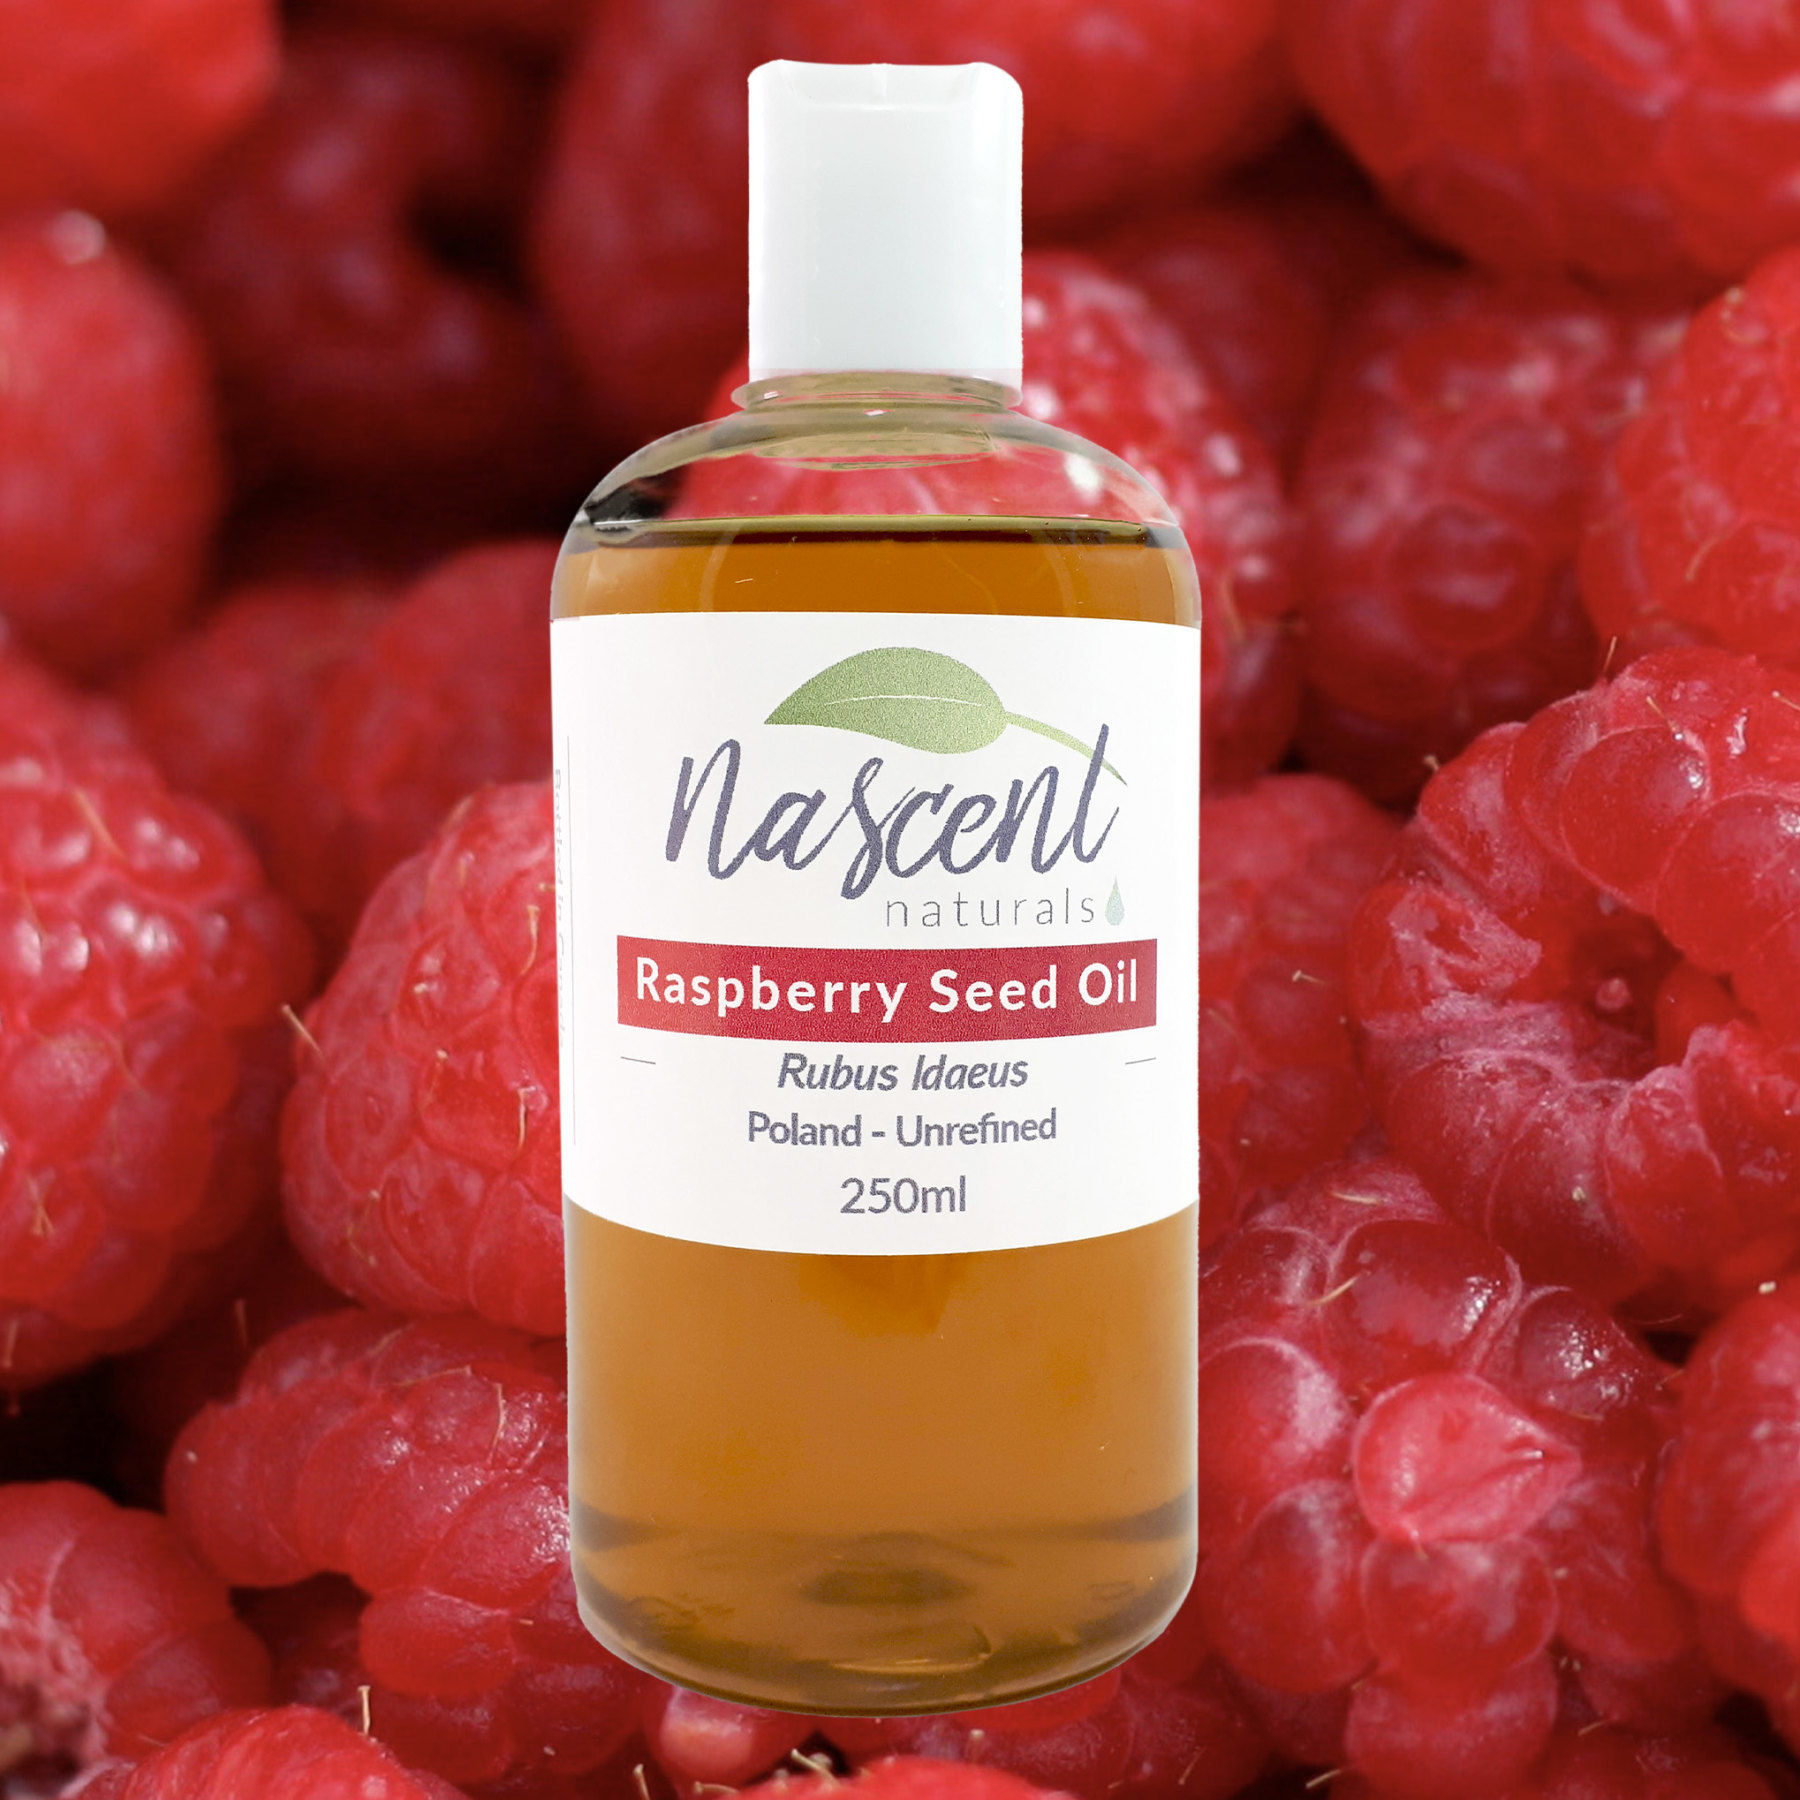 A bottle of Raspberry seed oil in front of a background of raspberries